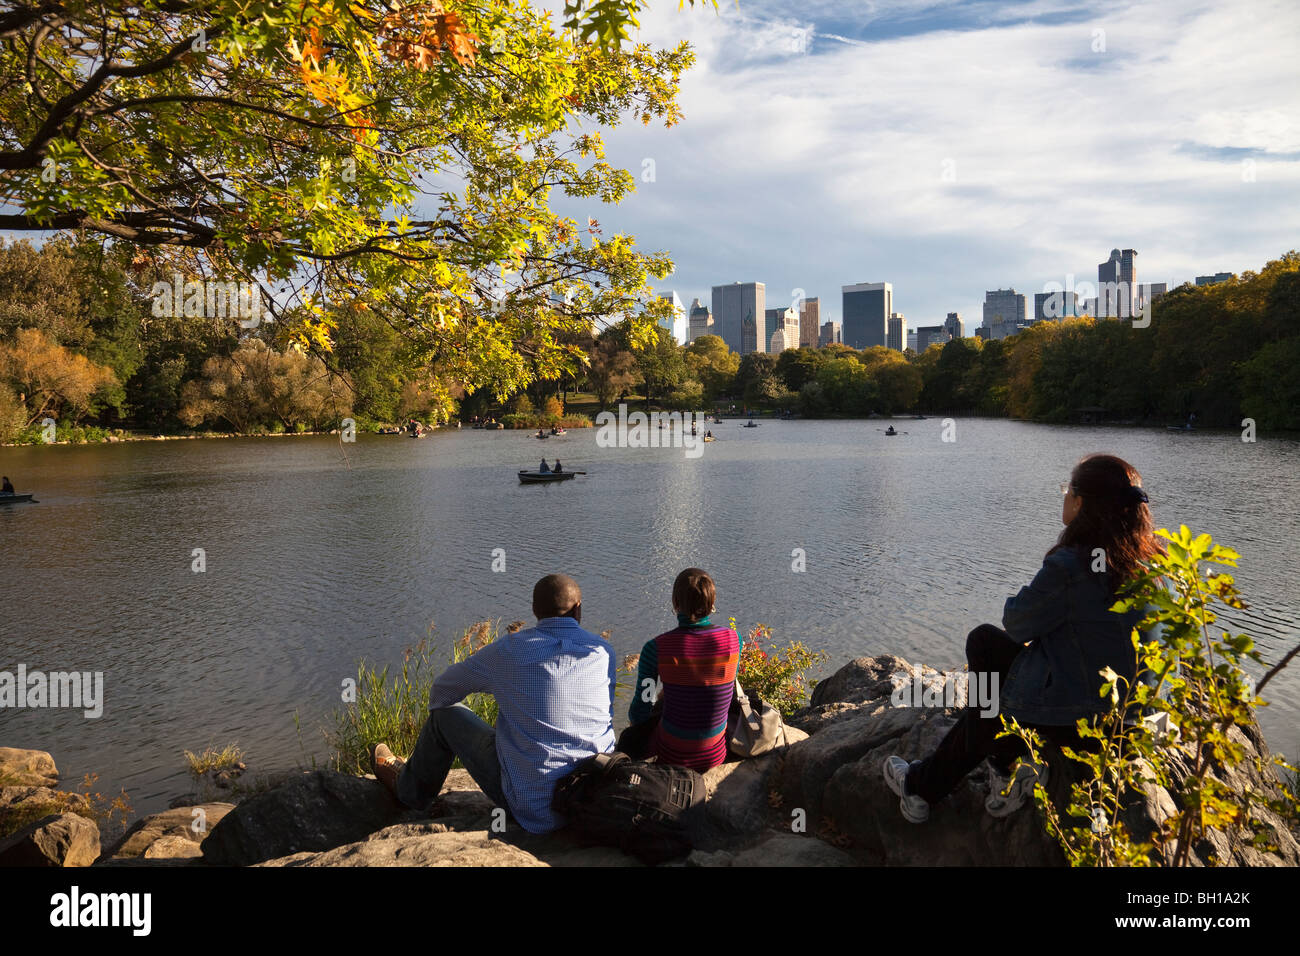 People watch boaters on The Lake in Central Park on a fall day with Manhattan skyline in distance. - Stock Image